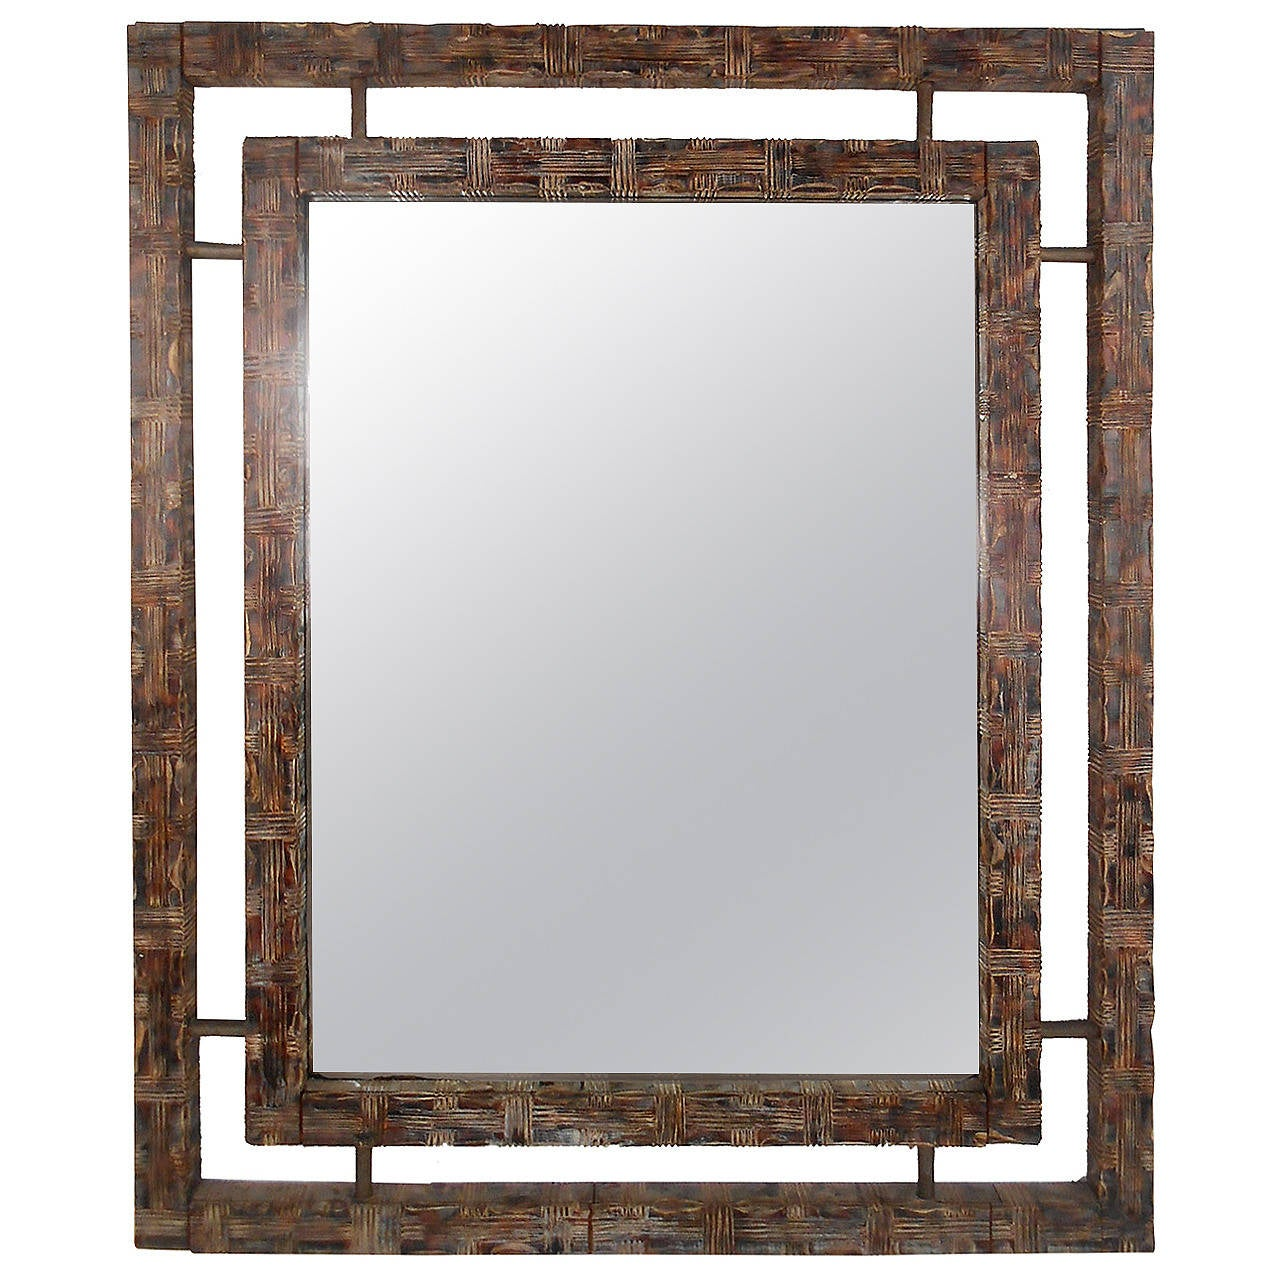 unique wall mirror w textured frame for sale at 1stdibs ForUnique Wall Frames